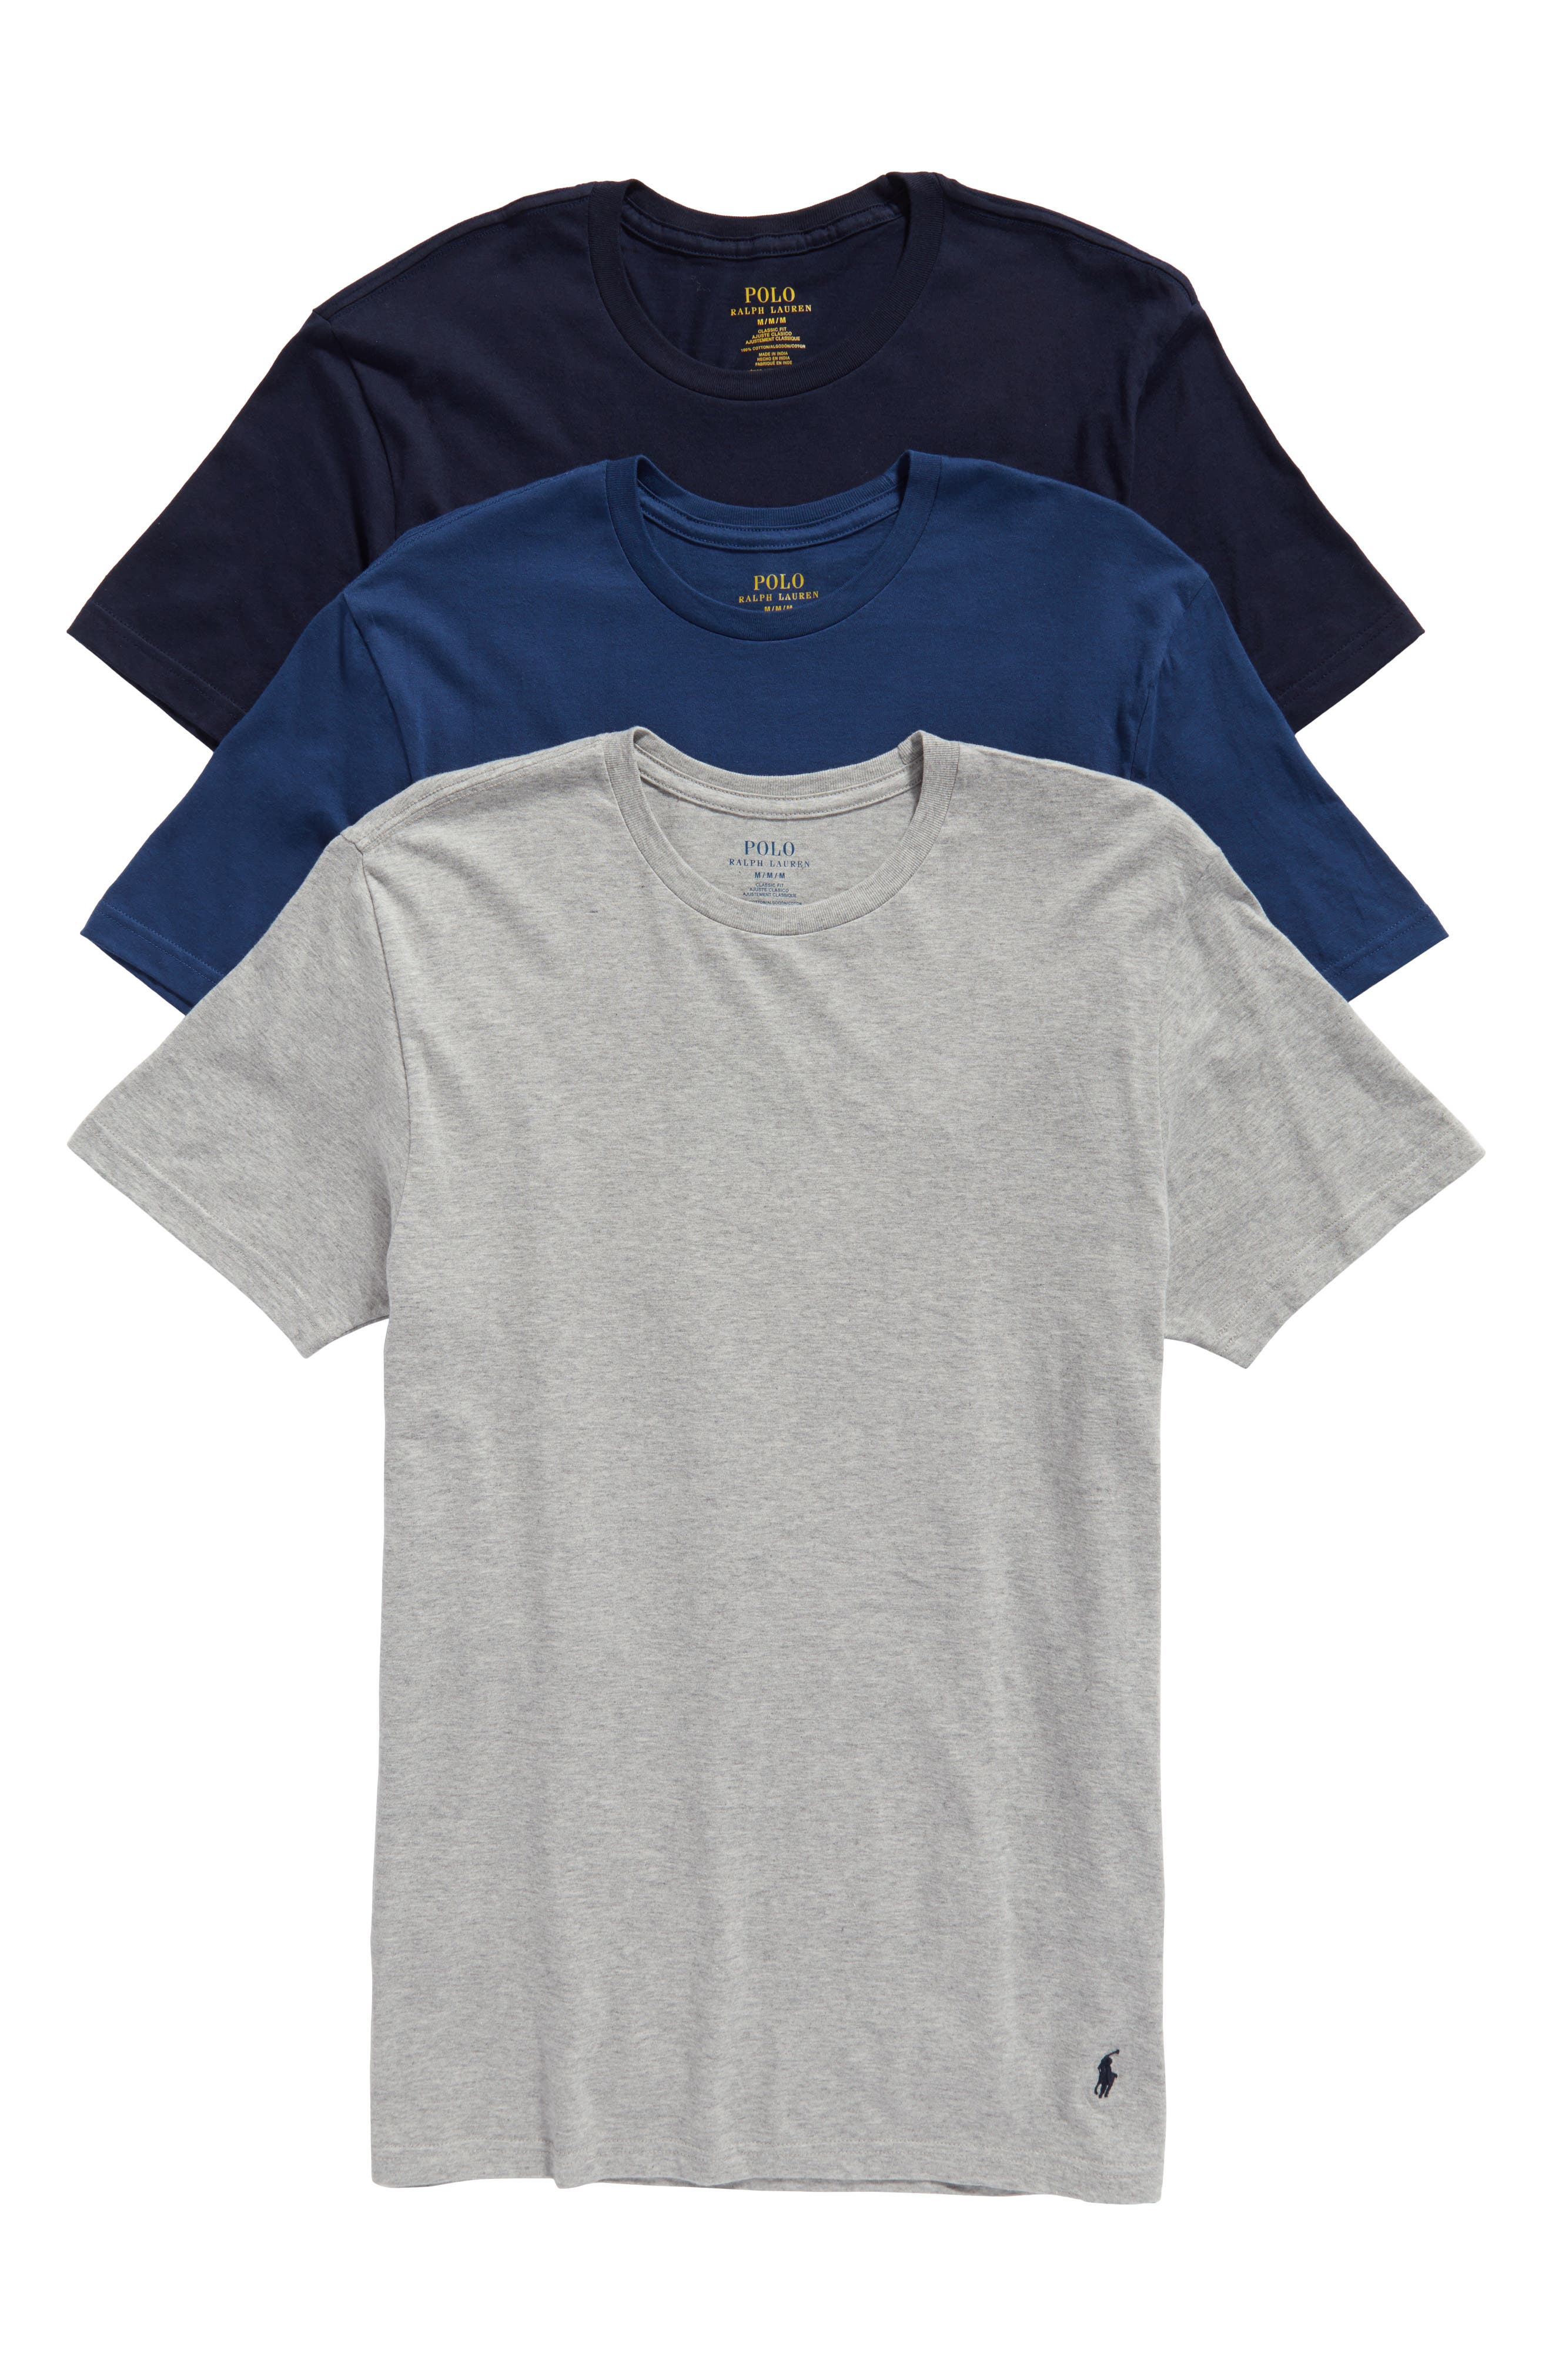 Alternate Image 1 Selected - Polo Ralph Lauren Classic Fit 3-Pack Cotton T-Shirt